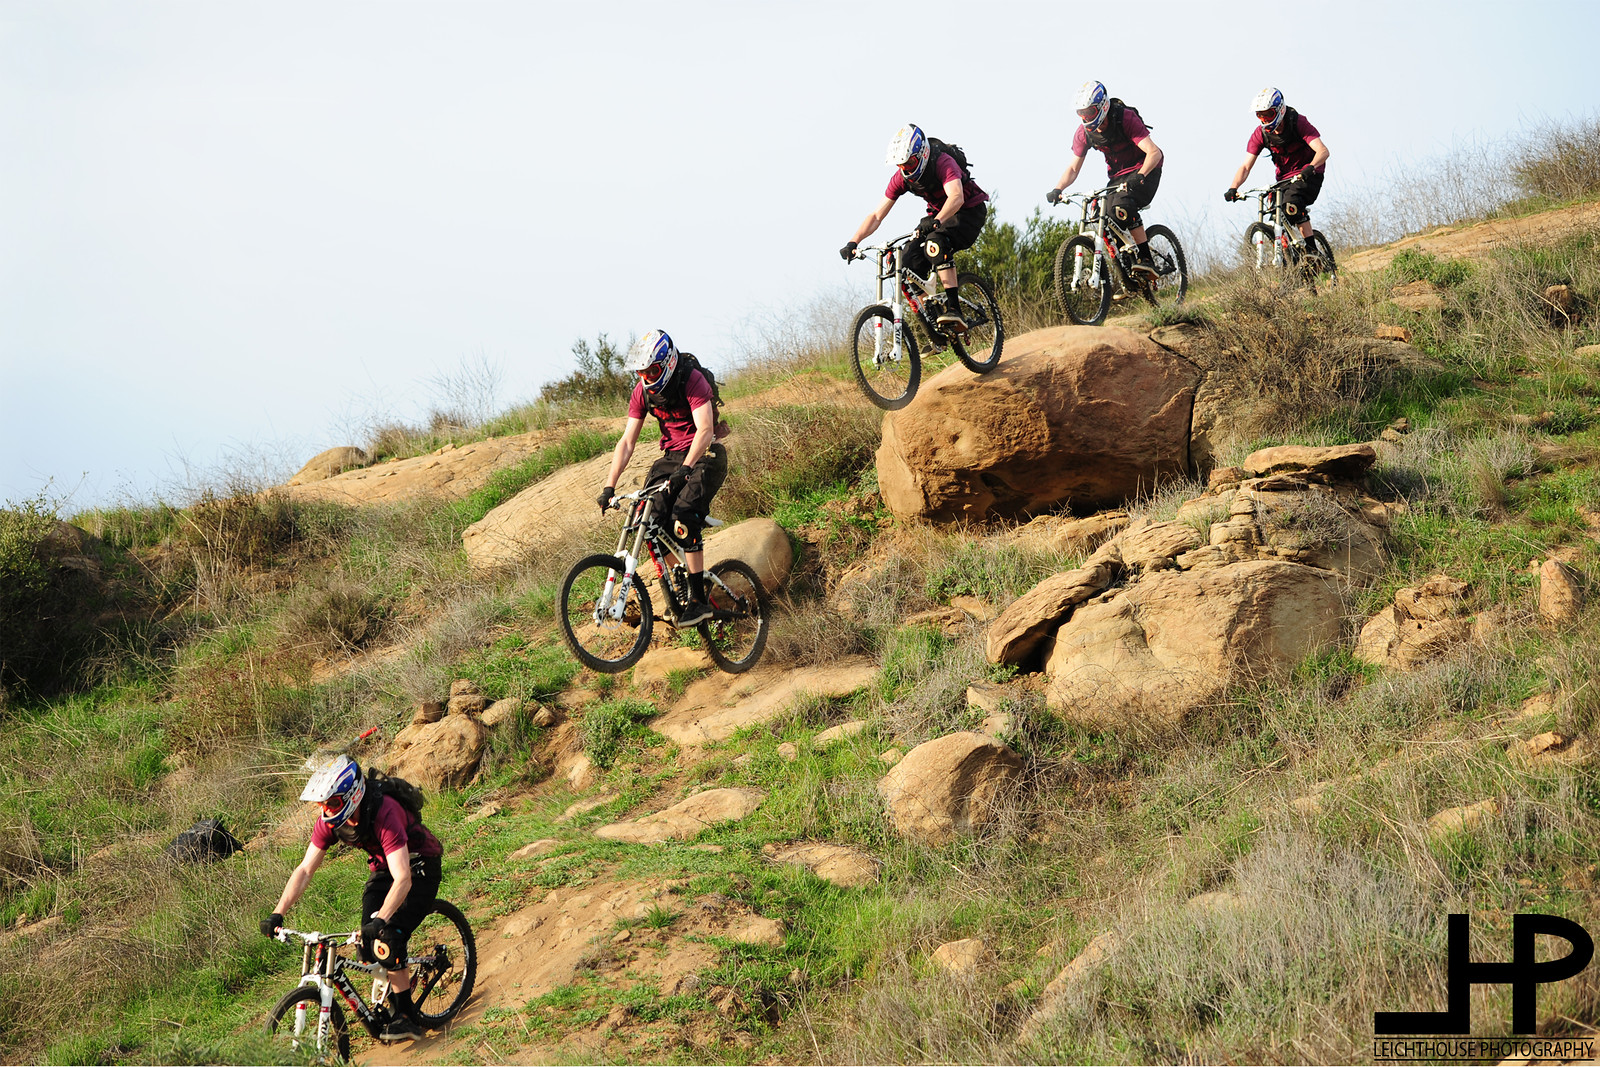 Curtis sequence - LeichtHouse photography - Mountain Biking Pictures - Vital MTB